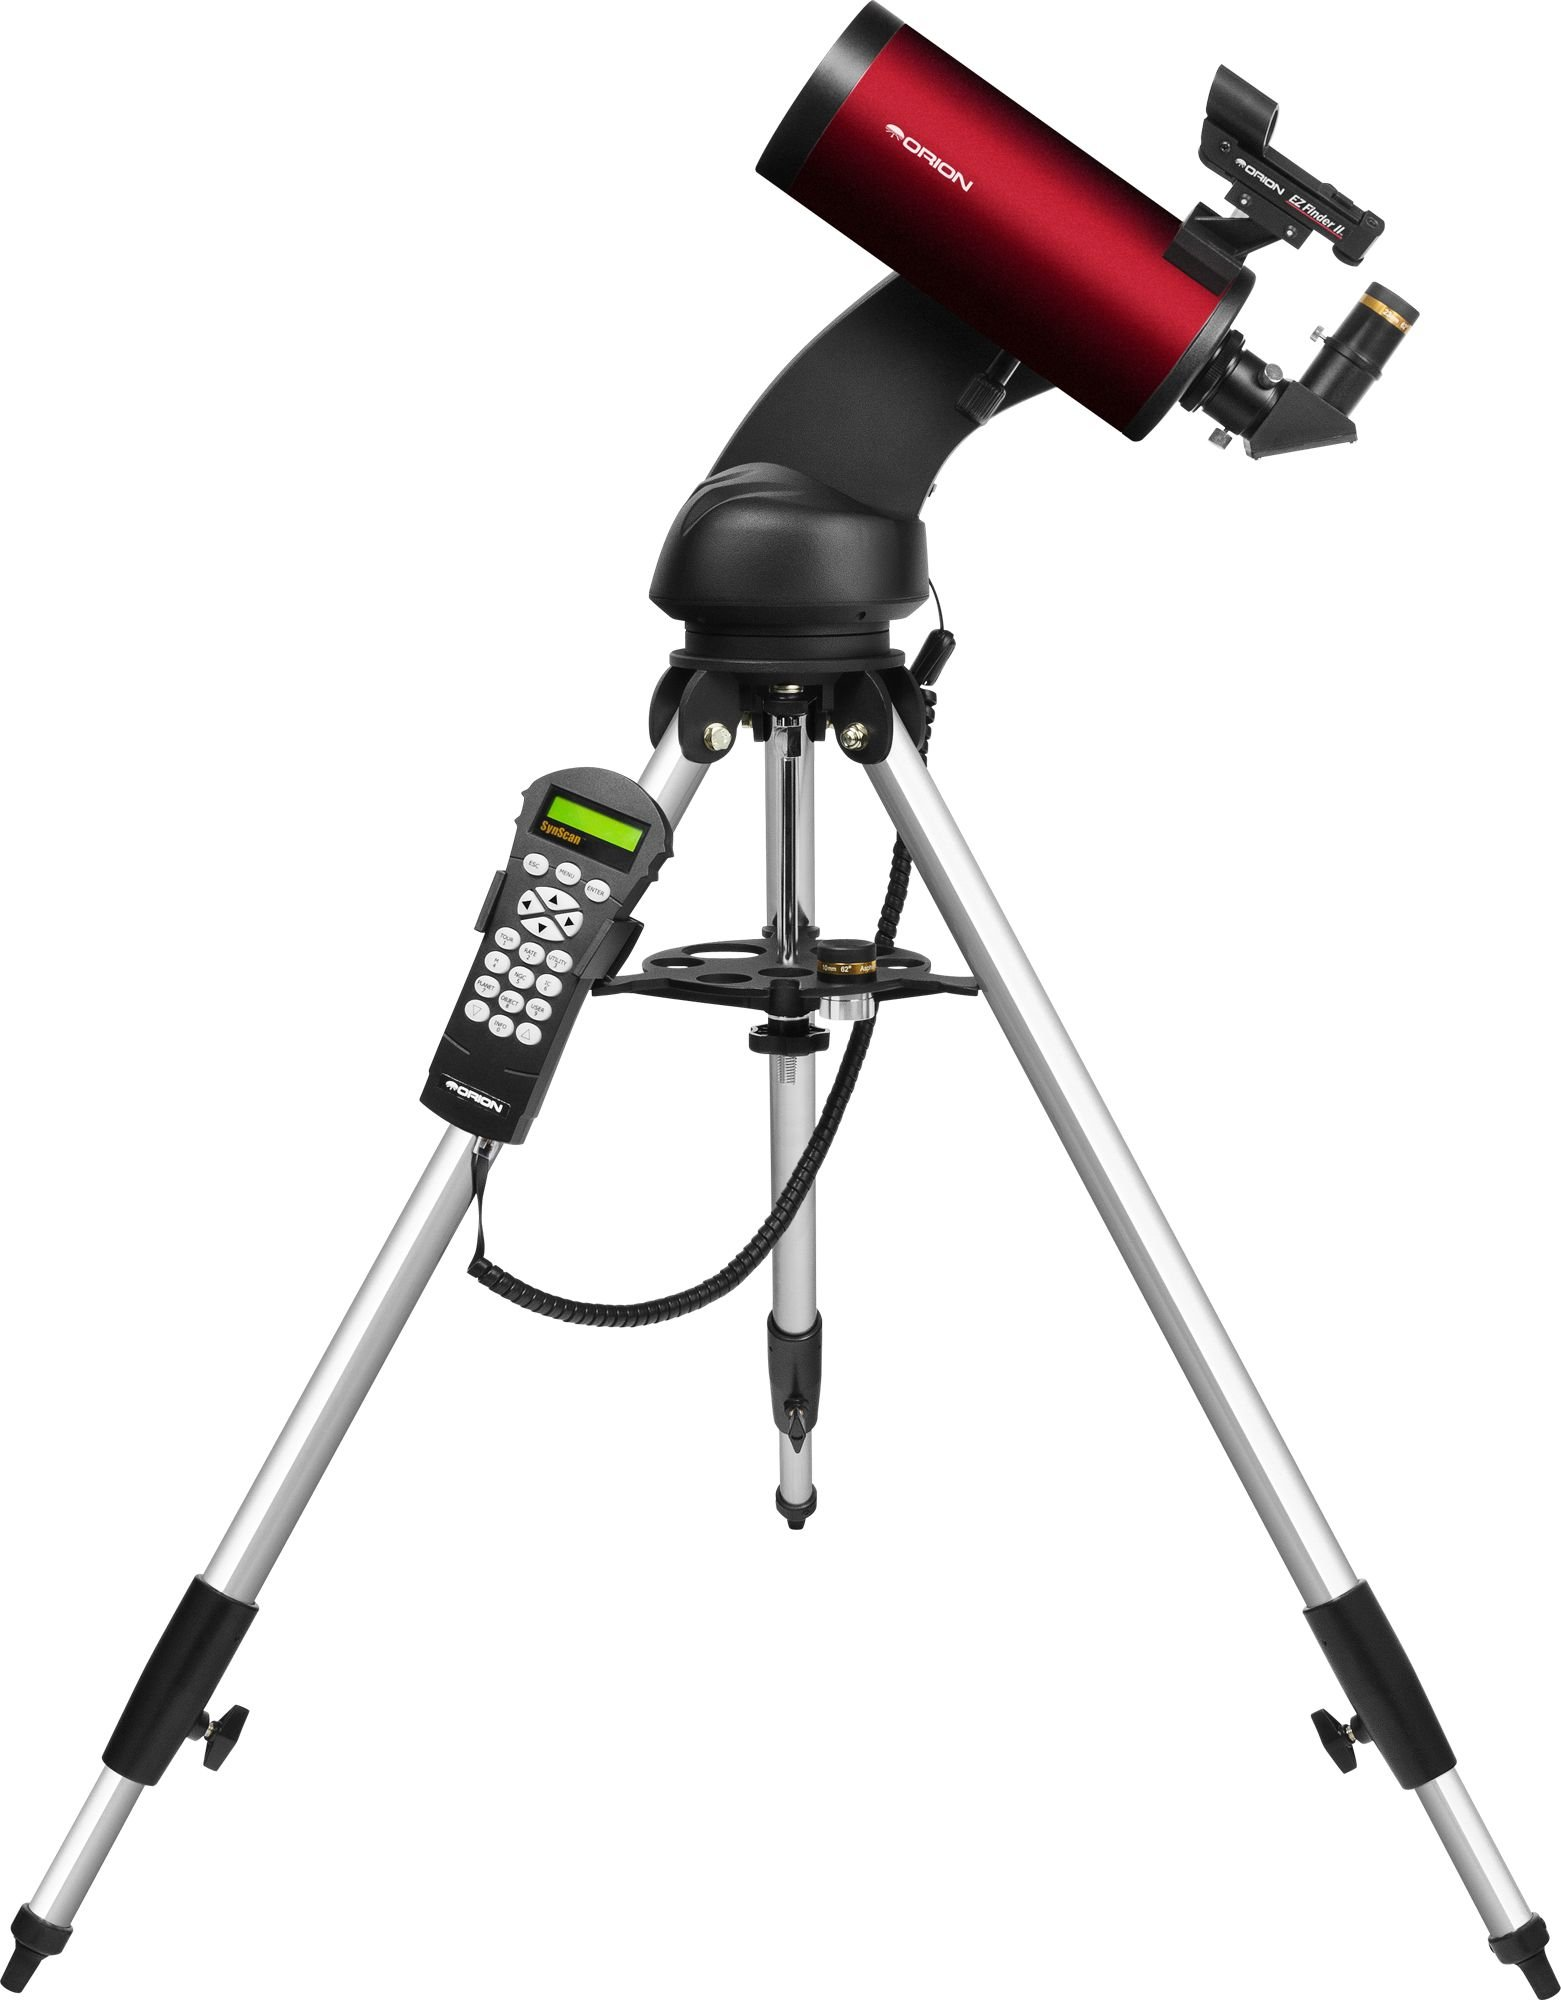 Orion StarSeeker IV 102mm GoTo Mak-Cass Telescope by Orion